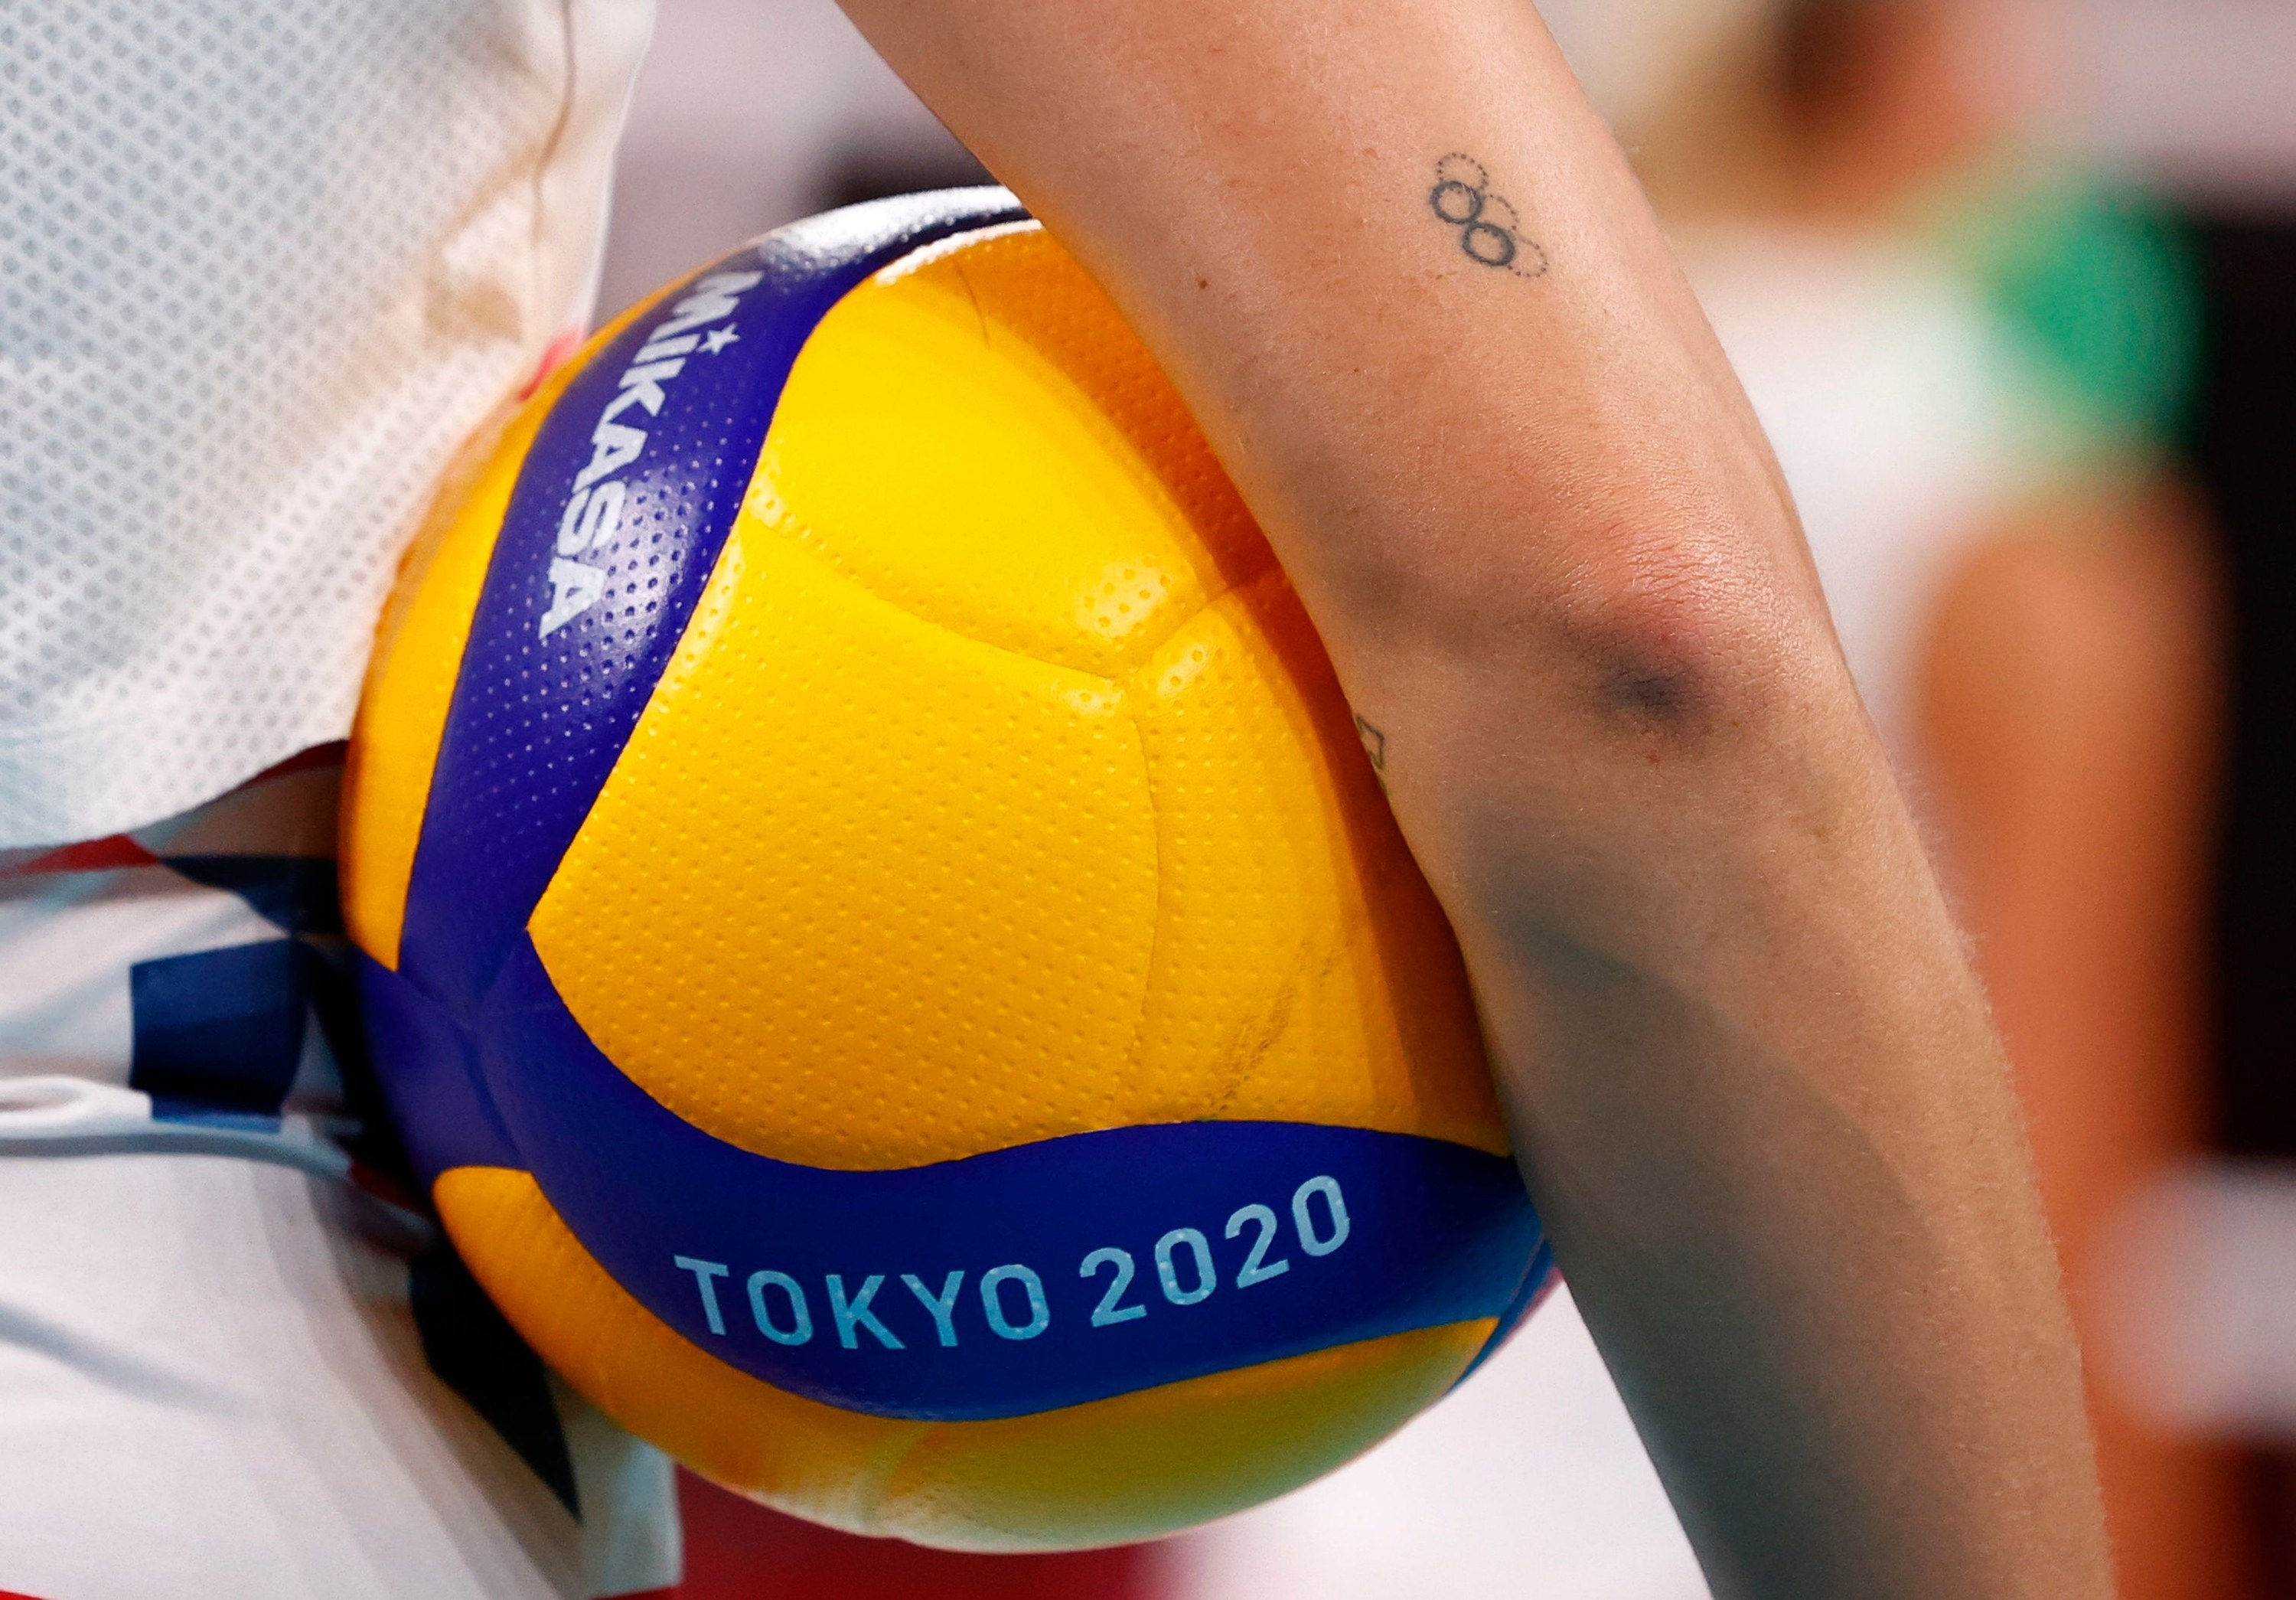 Bright yellow Tokyo 2020 ball is held under the arm of an Olympic athlete